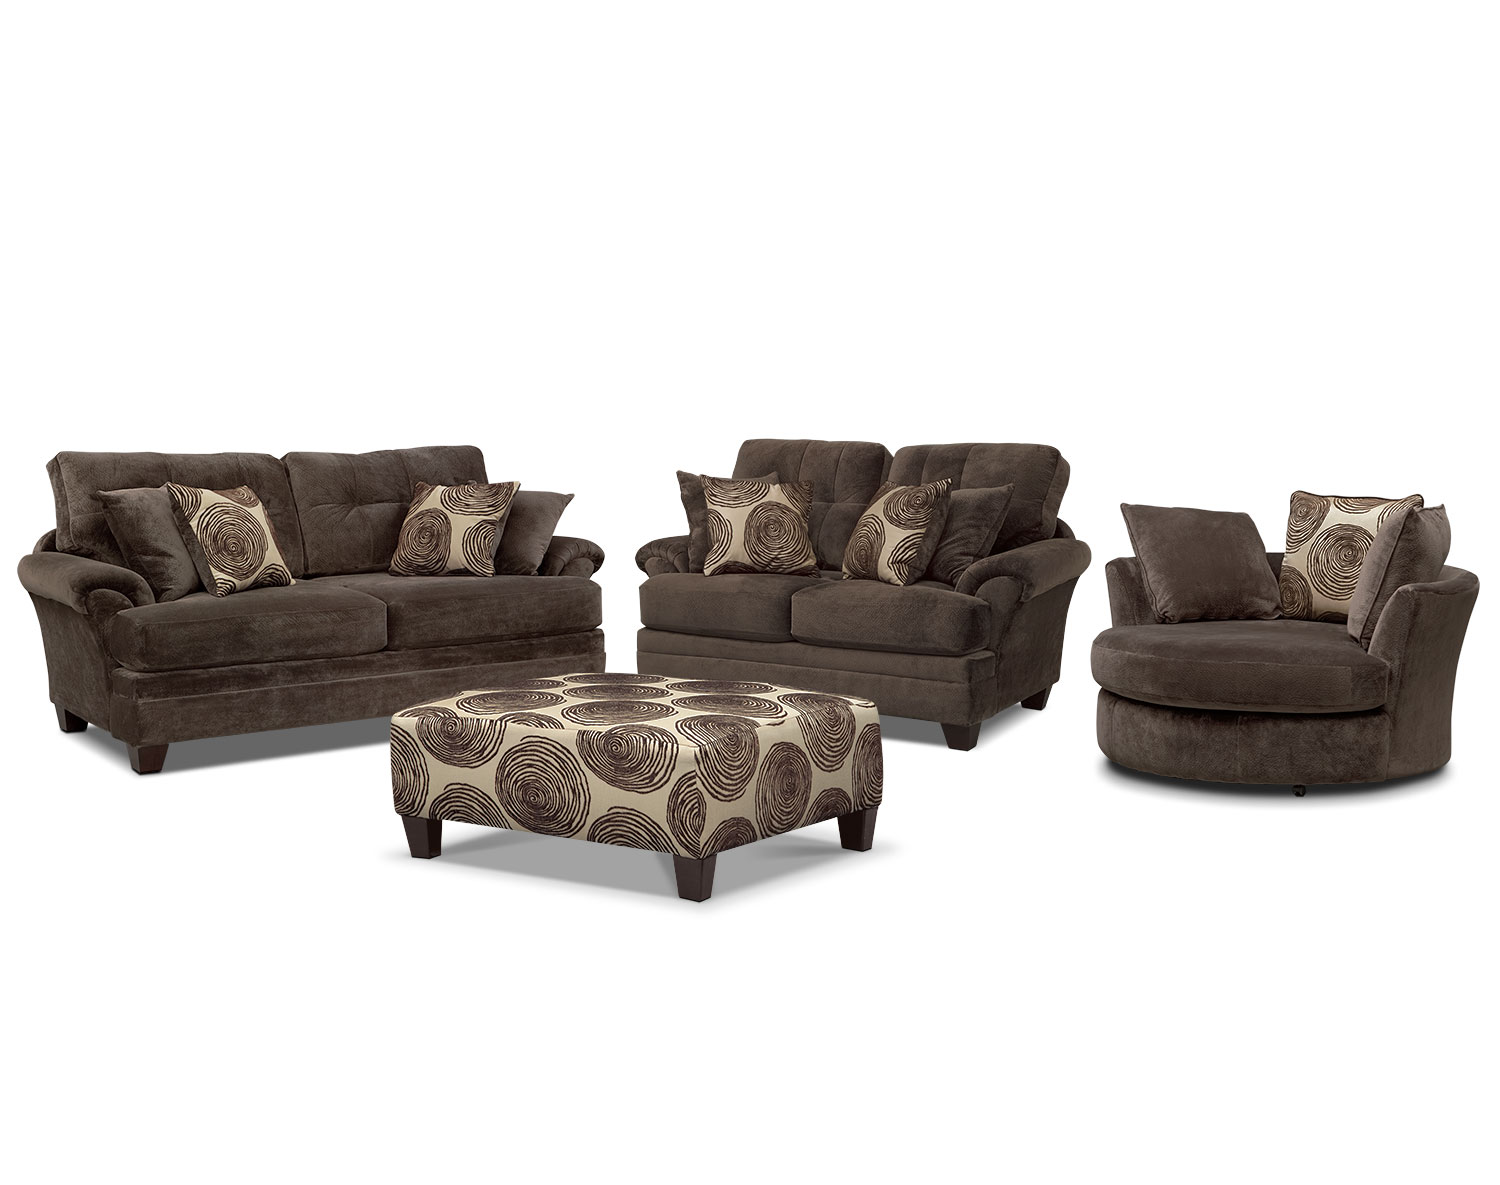 The Cordelle Living Room Collection - Chocolate